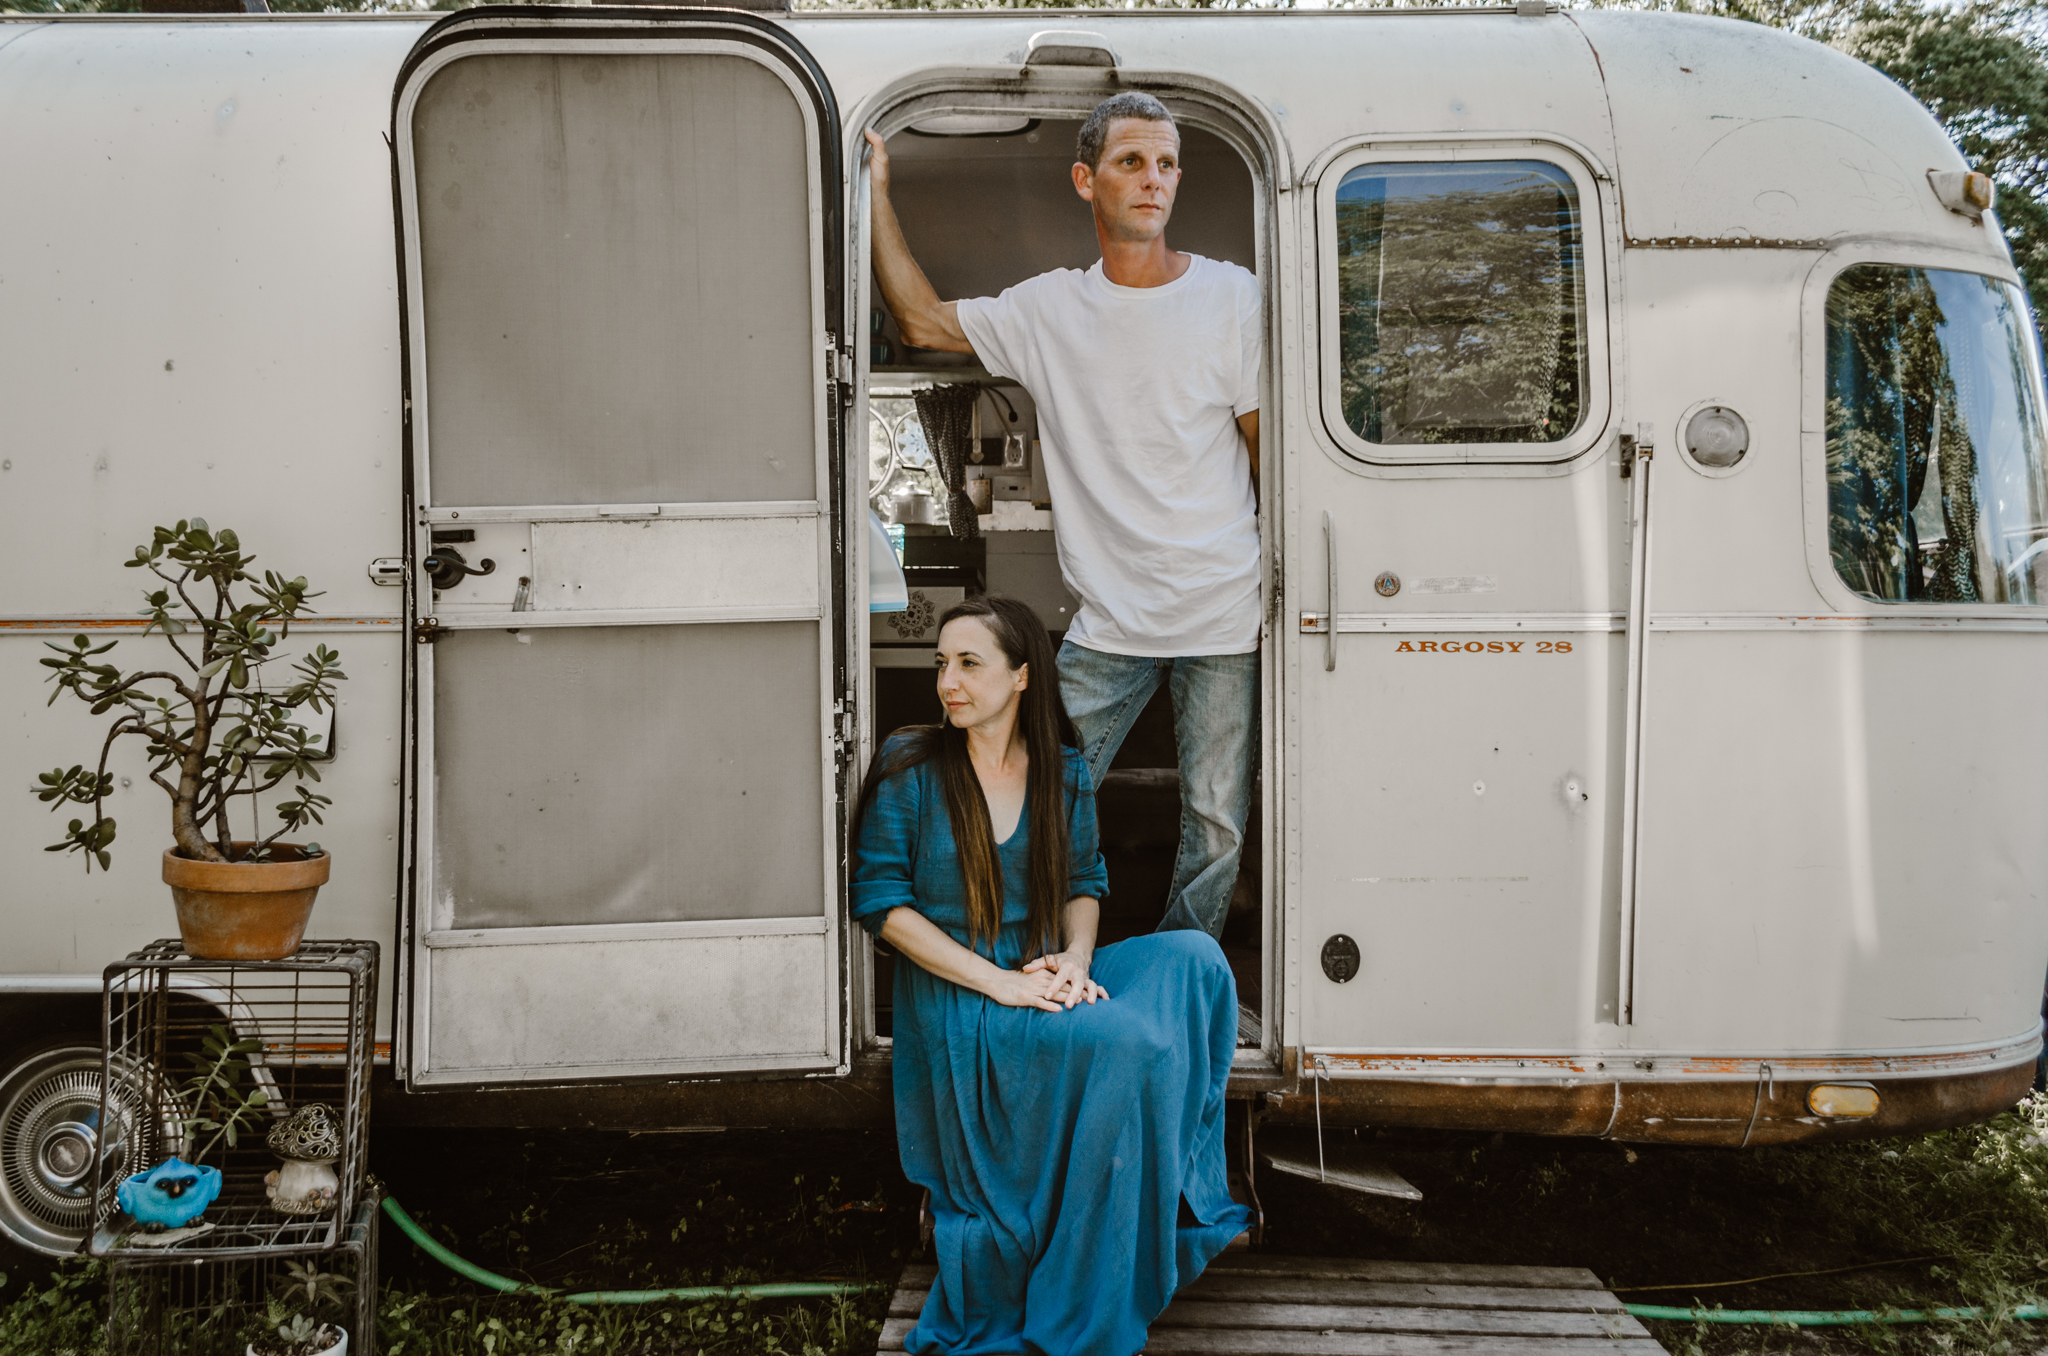 wilmington nc photographer the traveling dress collective project blue back laced maxi dress photos in an argosy airstream couple session